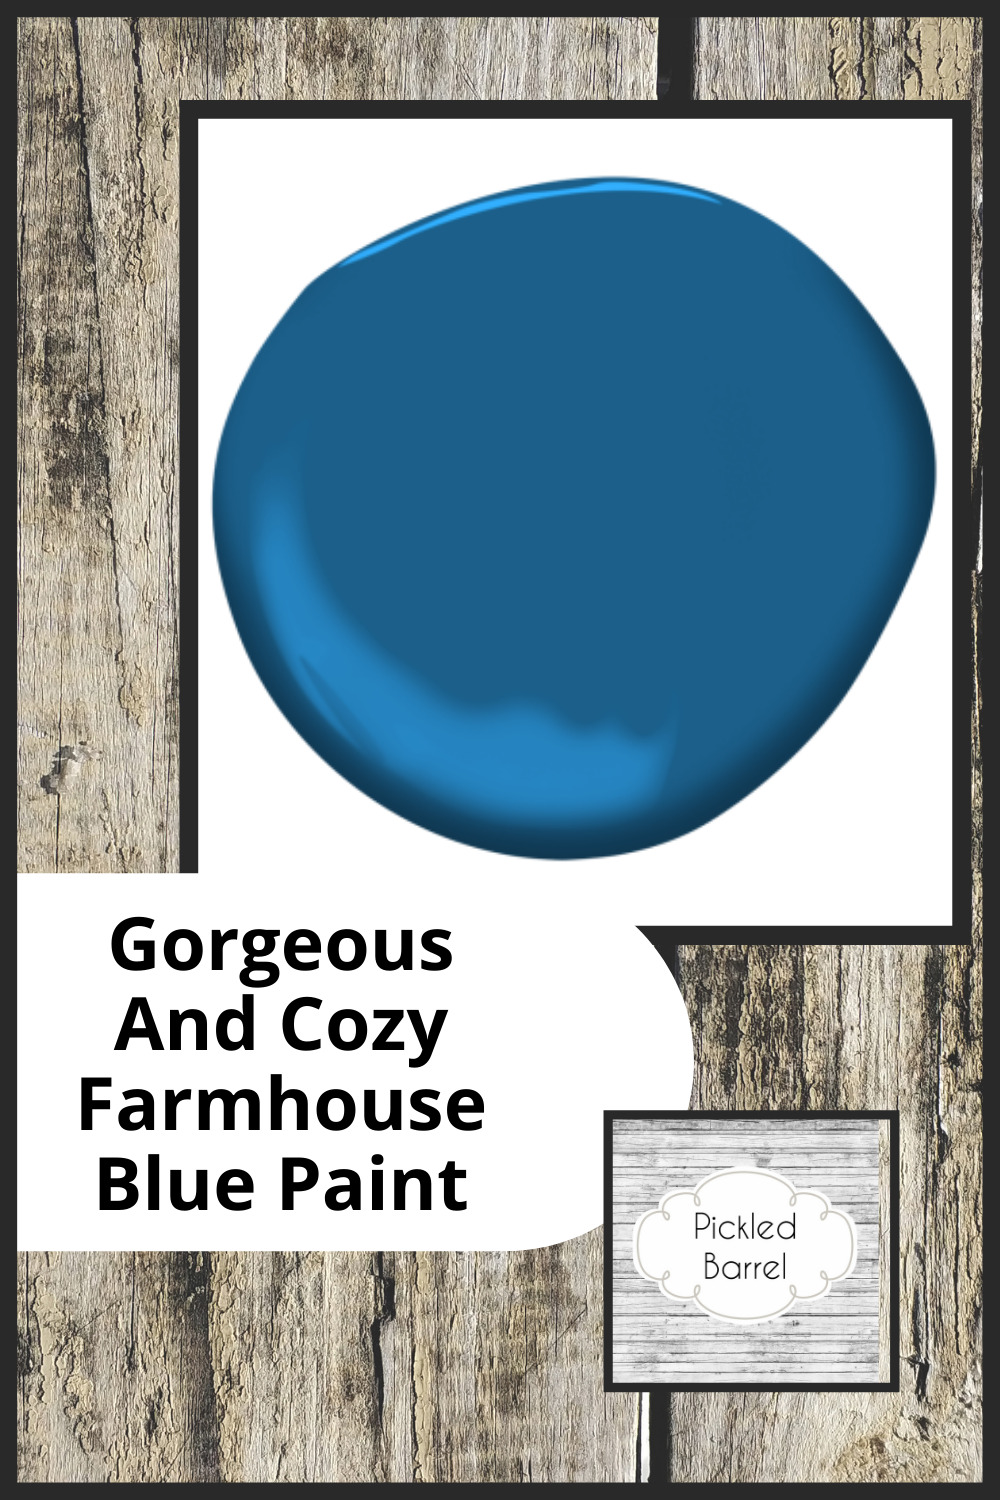 Pickledbarrel.com is the ultimate resource for all things rustic and farmhouse! Make sure every part of your home is perfectly rustic and cozy! Try these incredible shades of blue paint for your farmhouse!